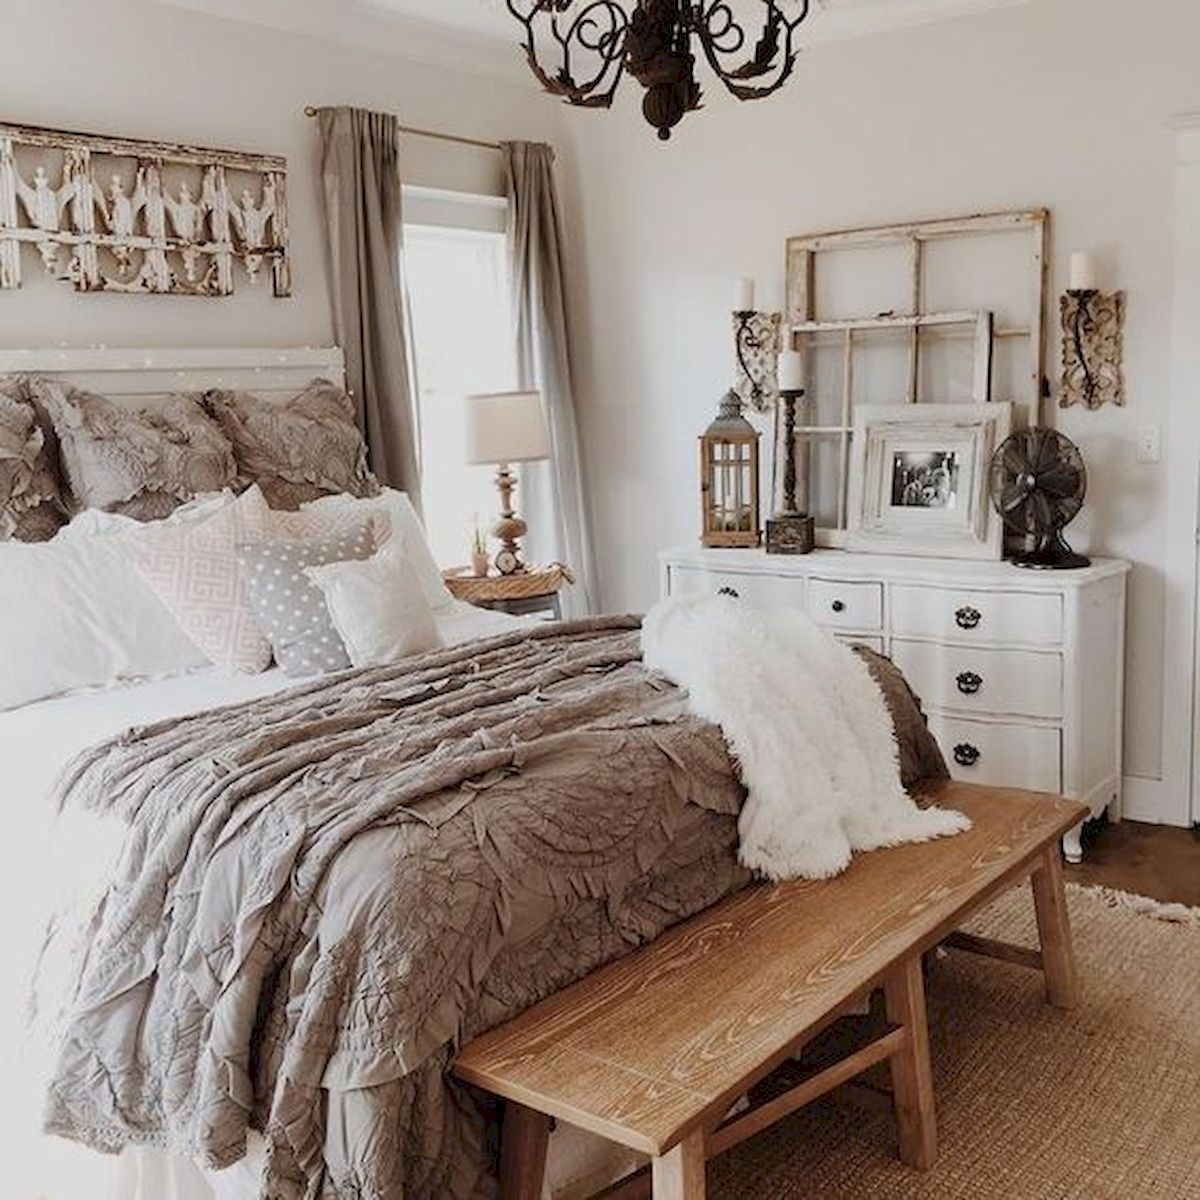 47 Most Popular Bedding for Farmhouse Bedroom Design Ideas and Decor (6)